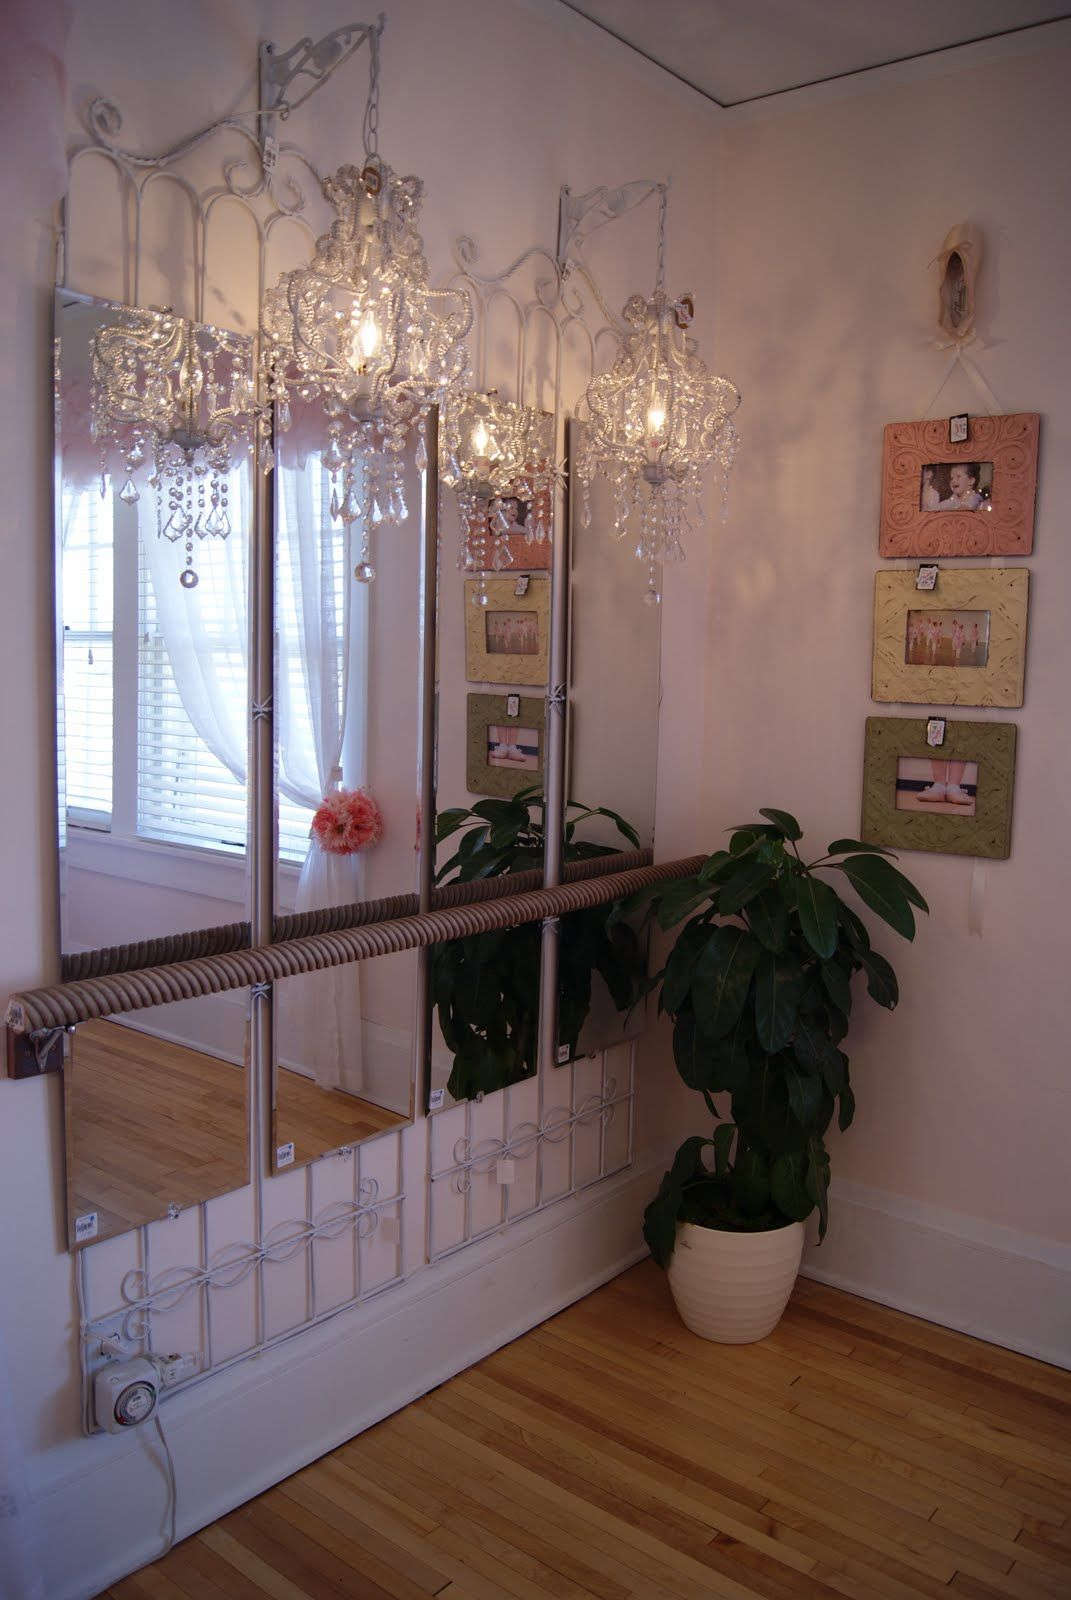 This Lovely Ballerina Room Was Created Using A Decorative